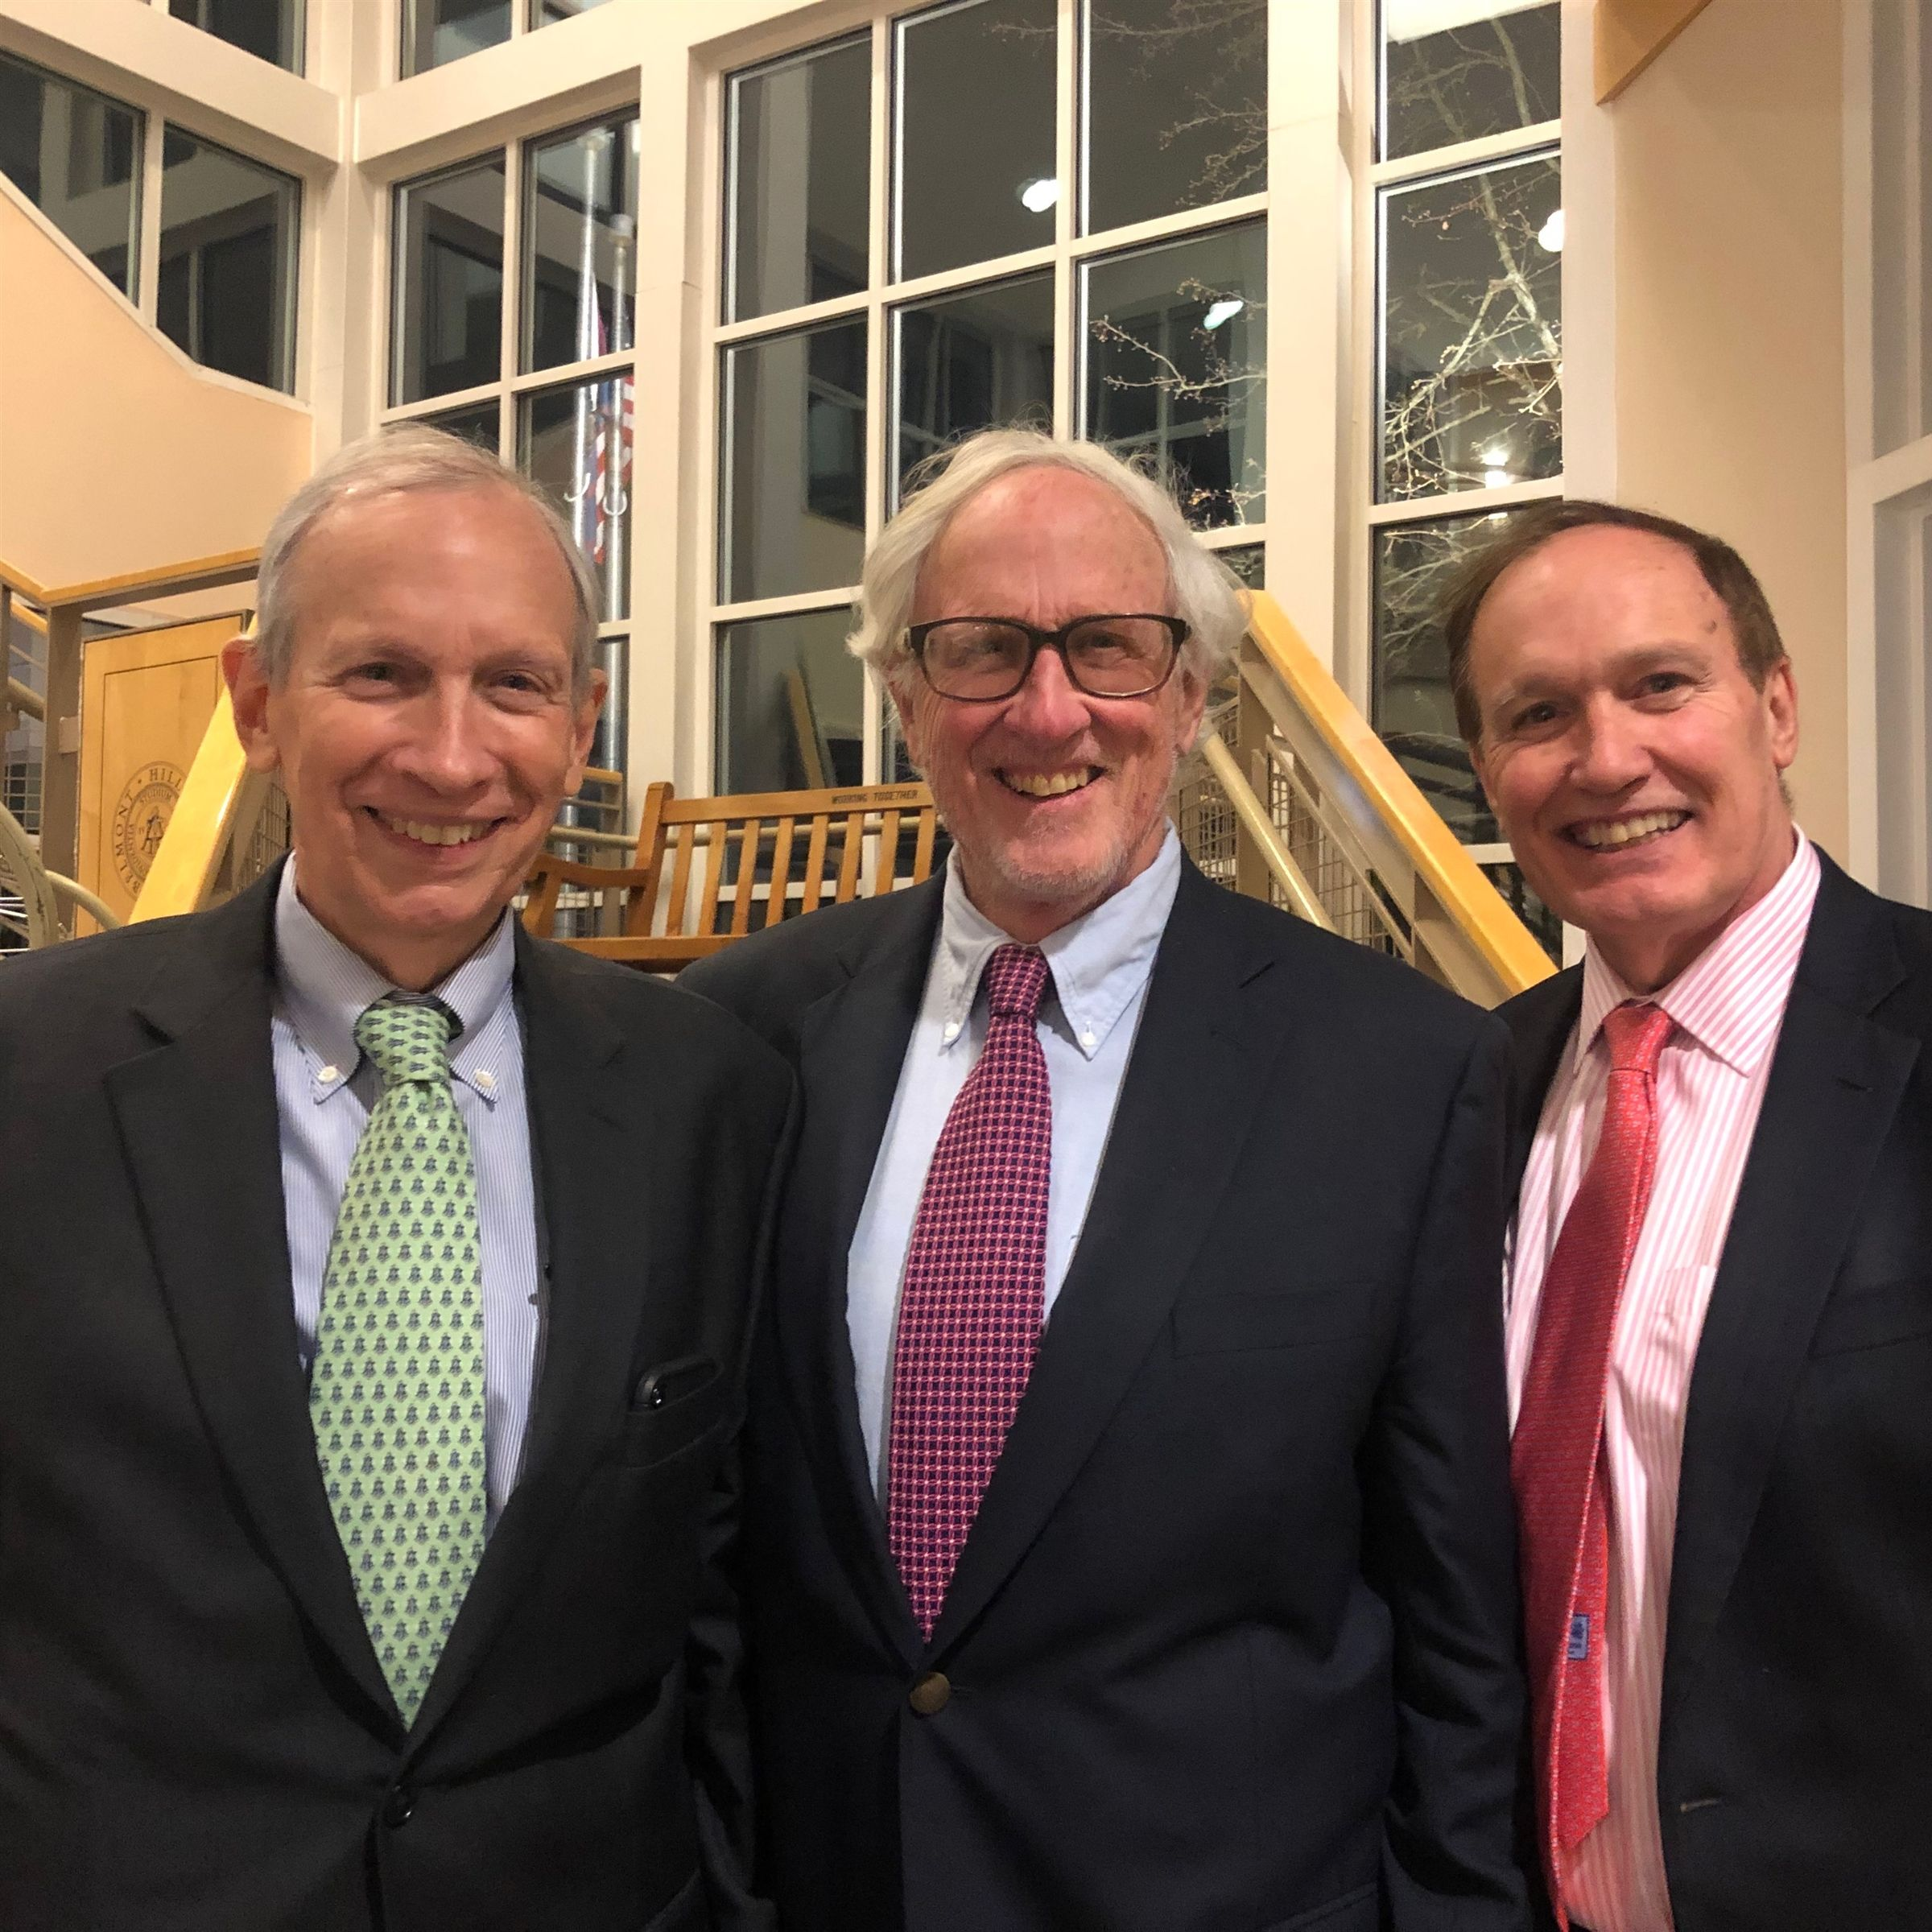 The Amon Brothers: Hank Amon '61, Doug Amon '63, and Tom Amon '65 at the Alumni Holiday Dinner, December 2019.